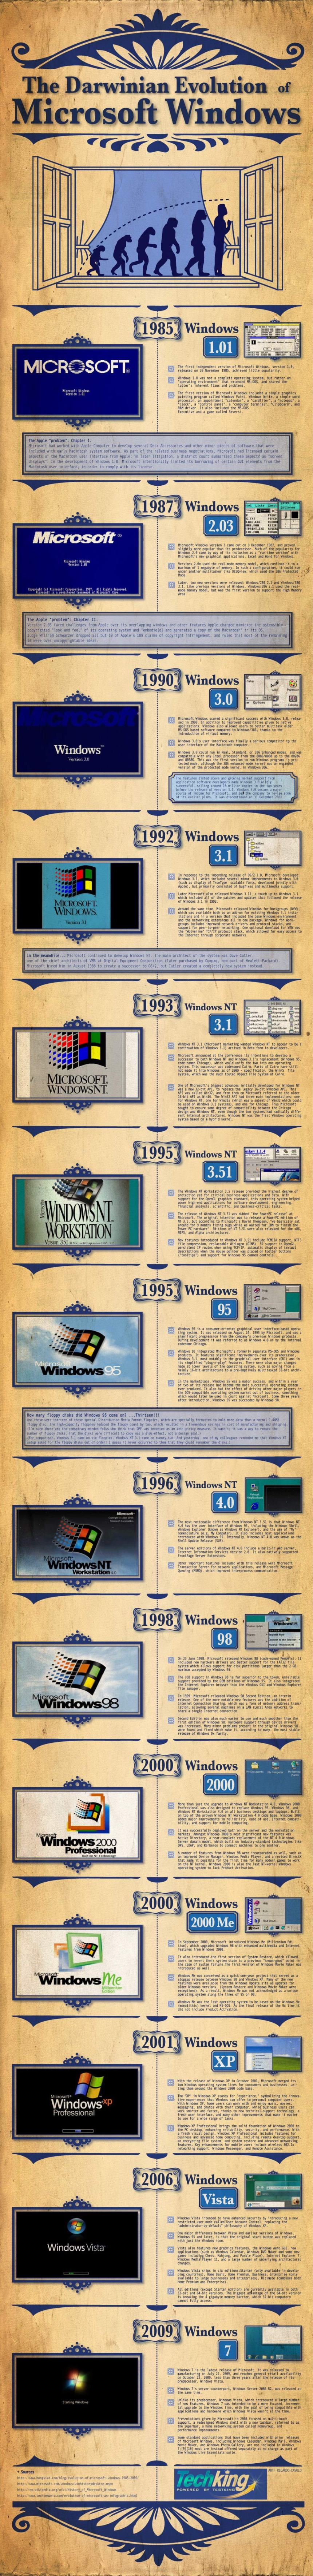 The Darwinian Evolution of Windows